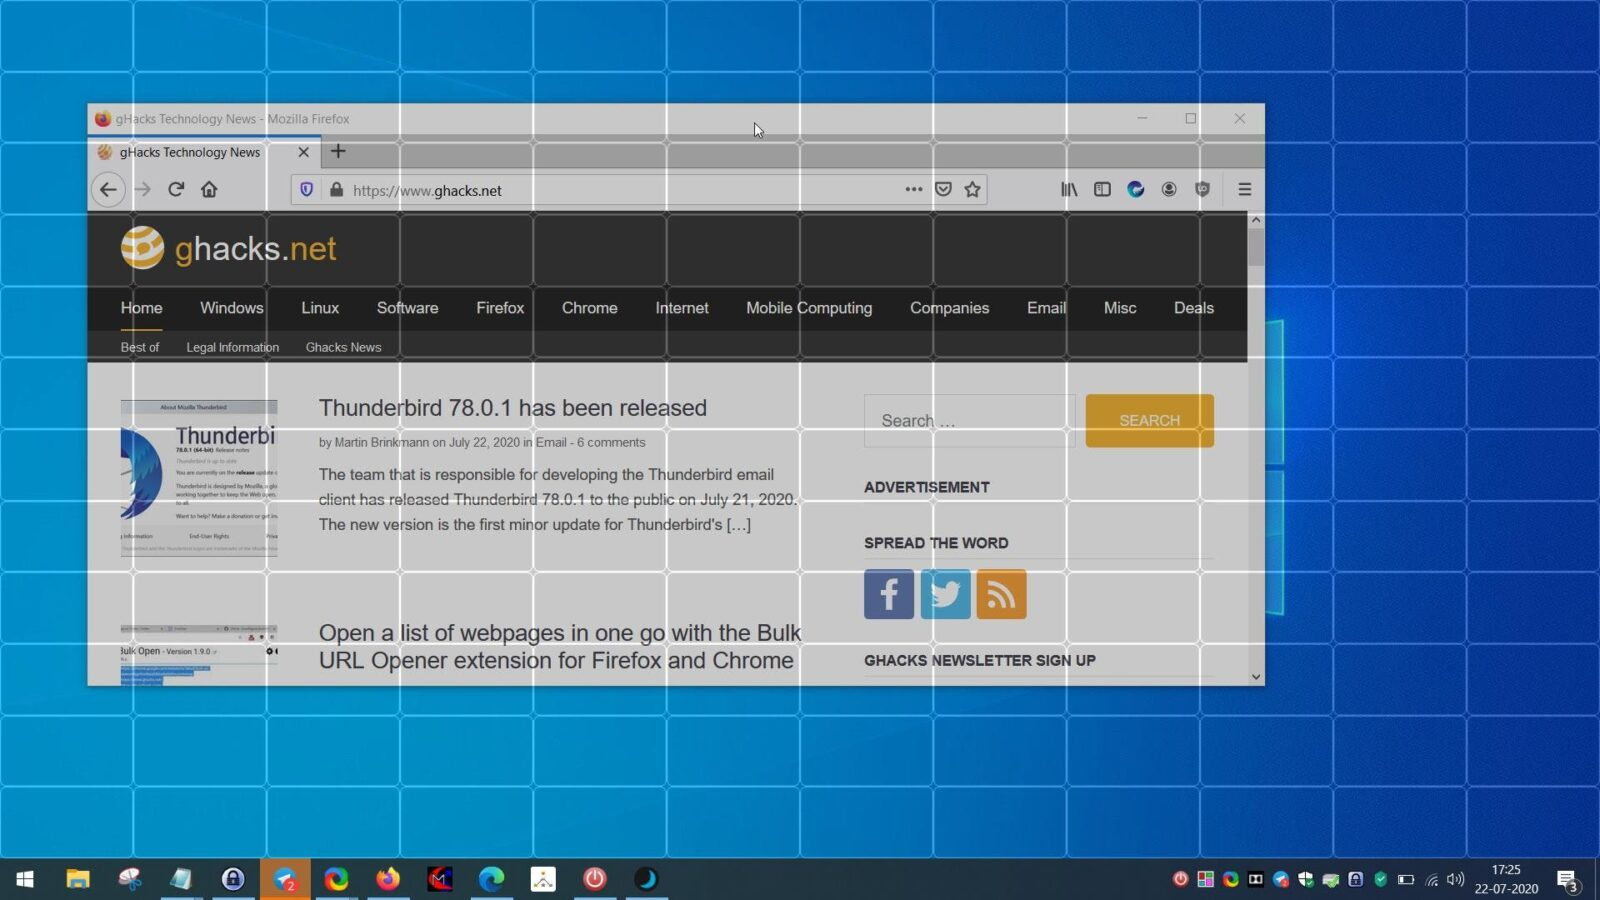 Resize and position windows quickly with ScreenGridy